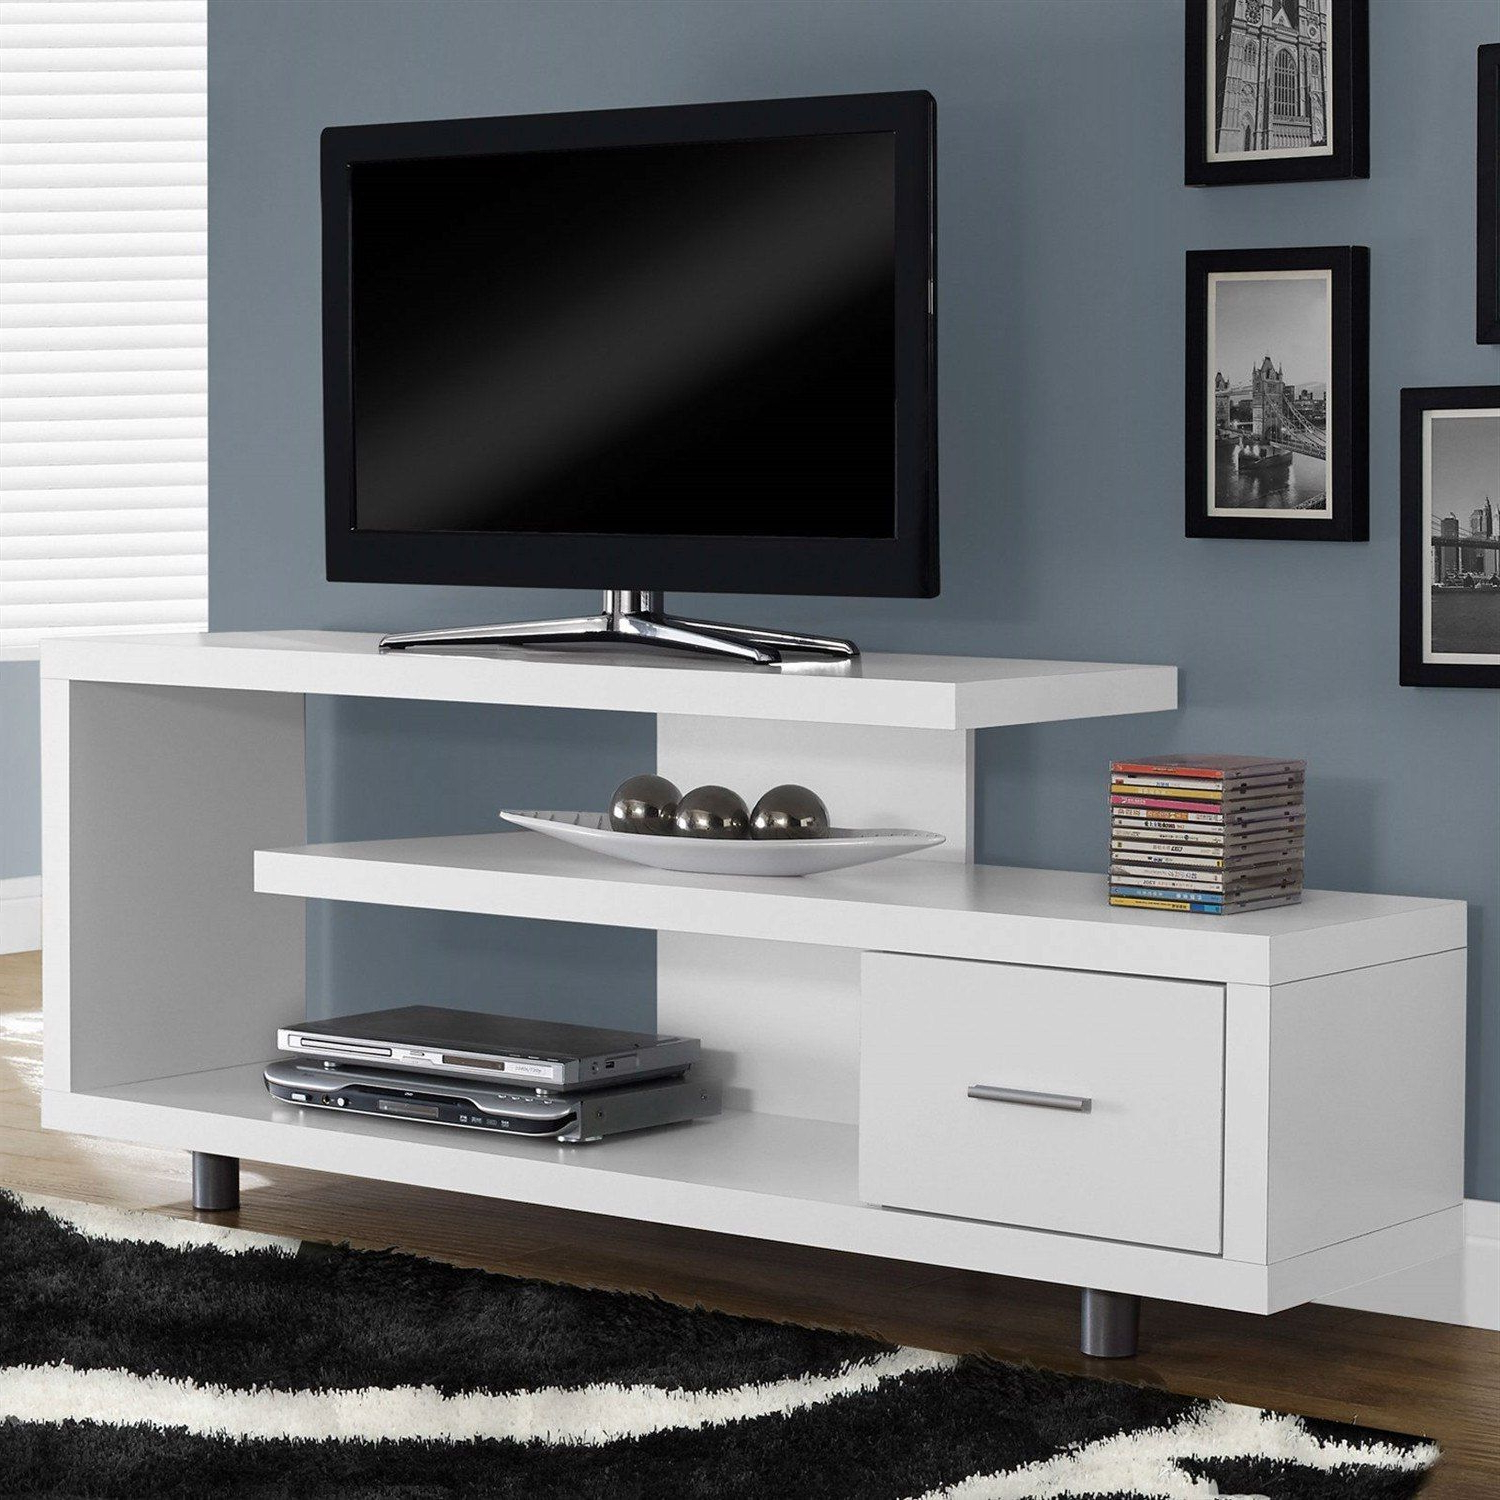 White Modern Tv Stand – Fits Up To 60 Inch Flat Screen Tv (View 20 of 20)